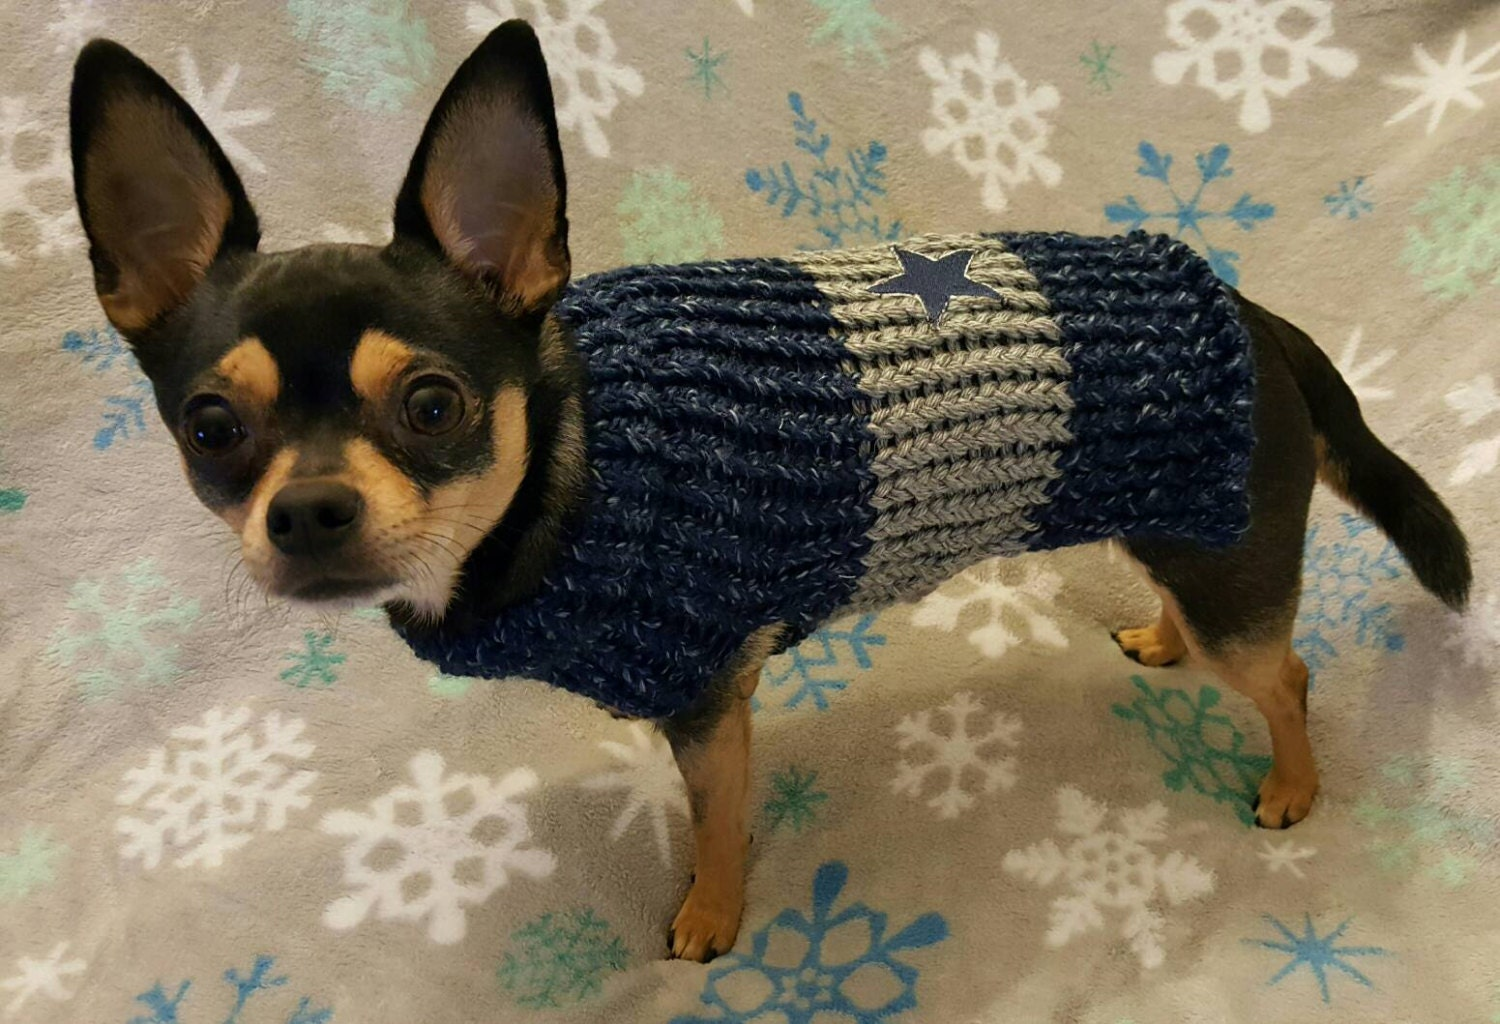 buy online 86322 be94b Dallas Cowboys color Dog Sweater,NFL dog,cat,hand knitted,Christmas dog  gift,Holiday sweater,Trendy cute dog cat clothes,Winter warm